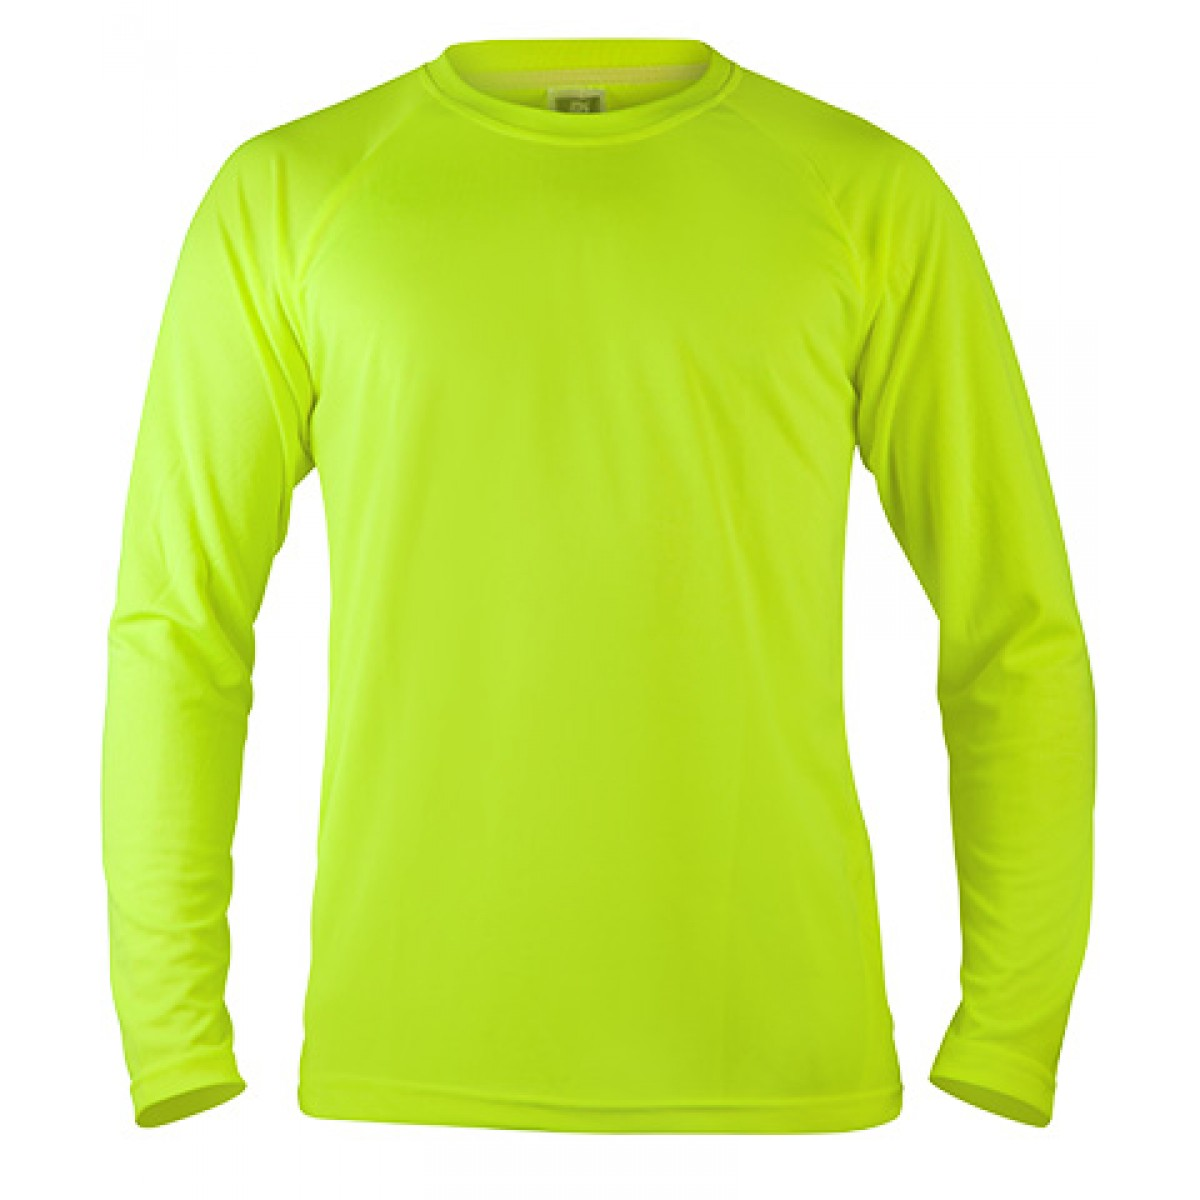 Long Sleeve Mesh Performance T-shirt